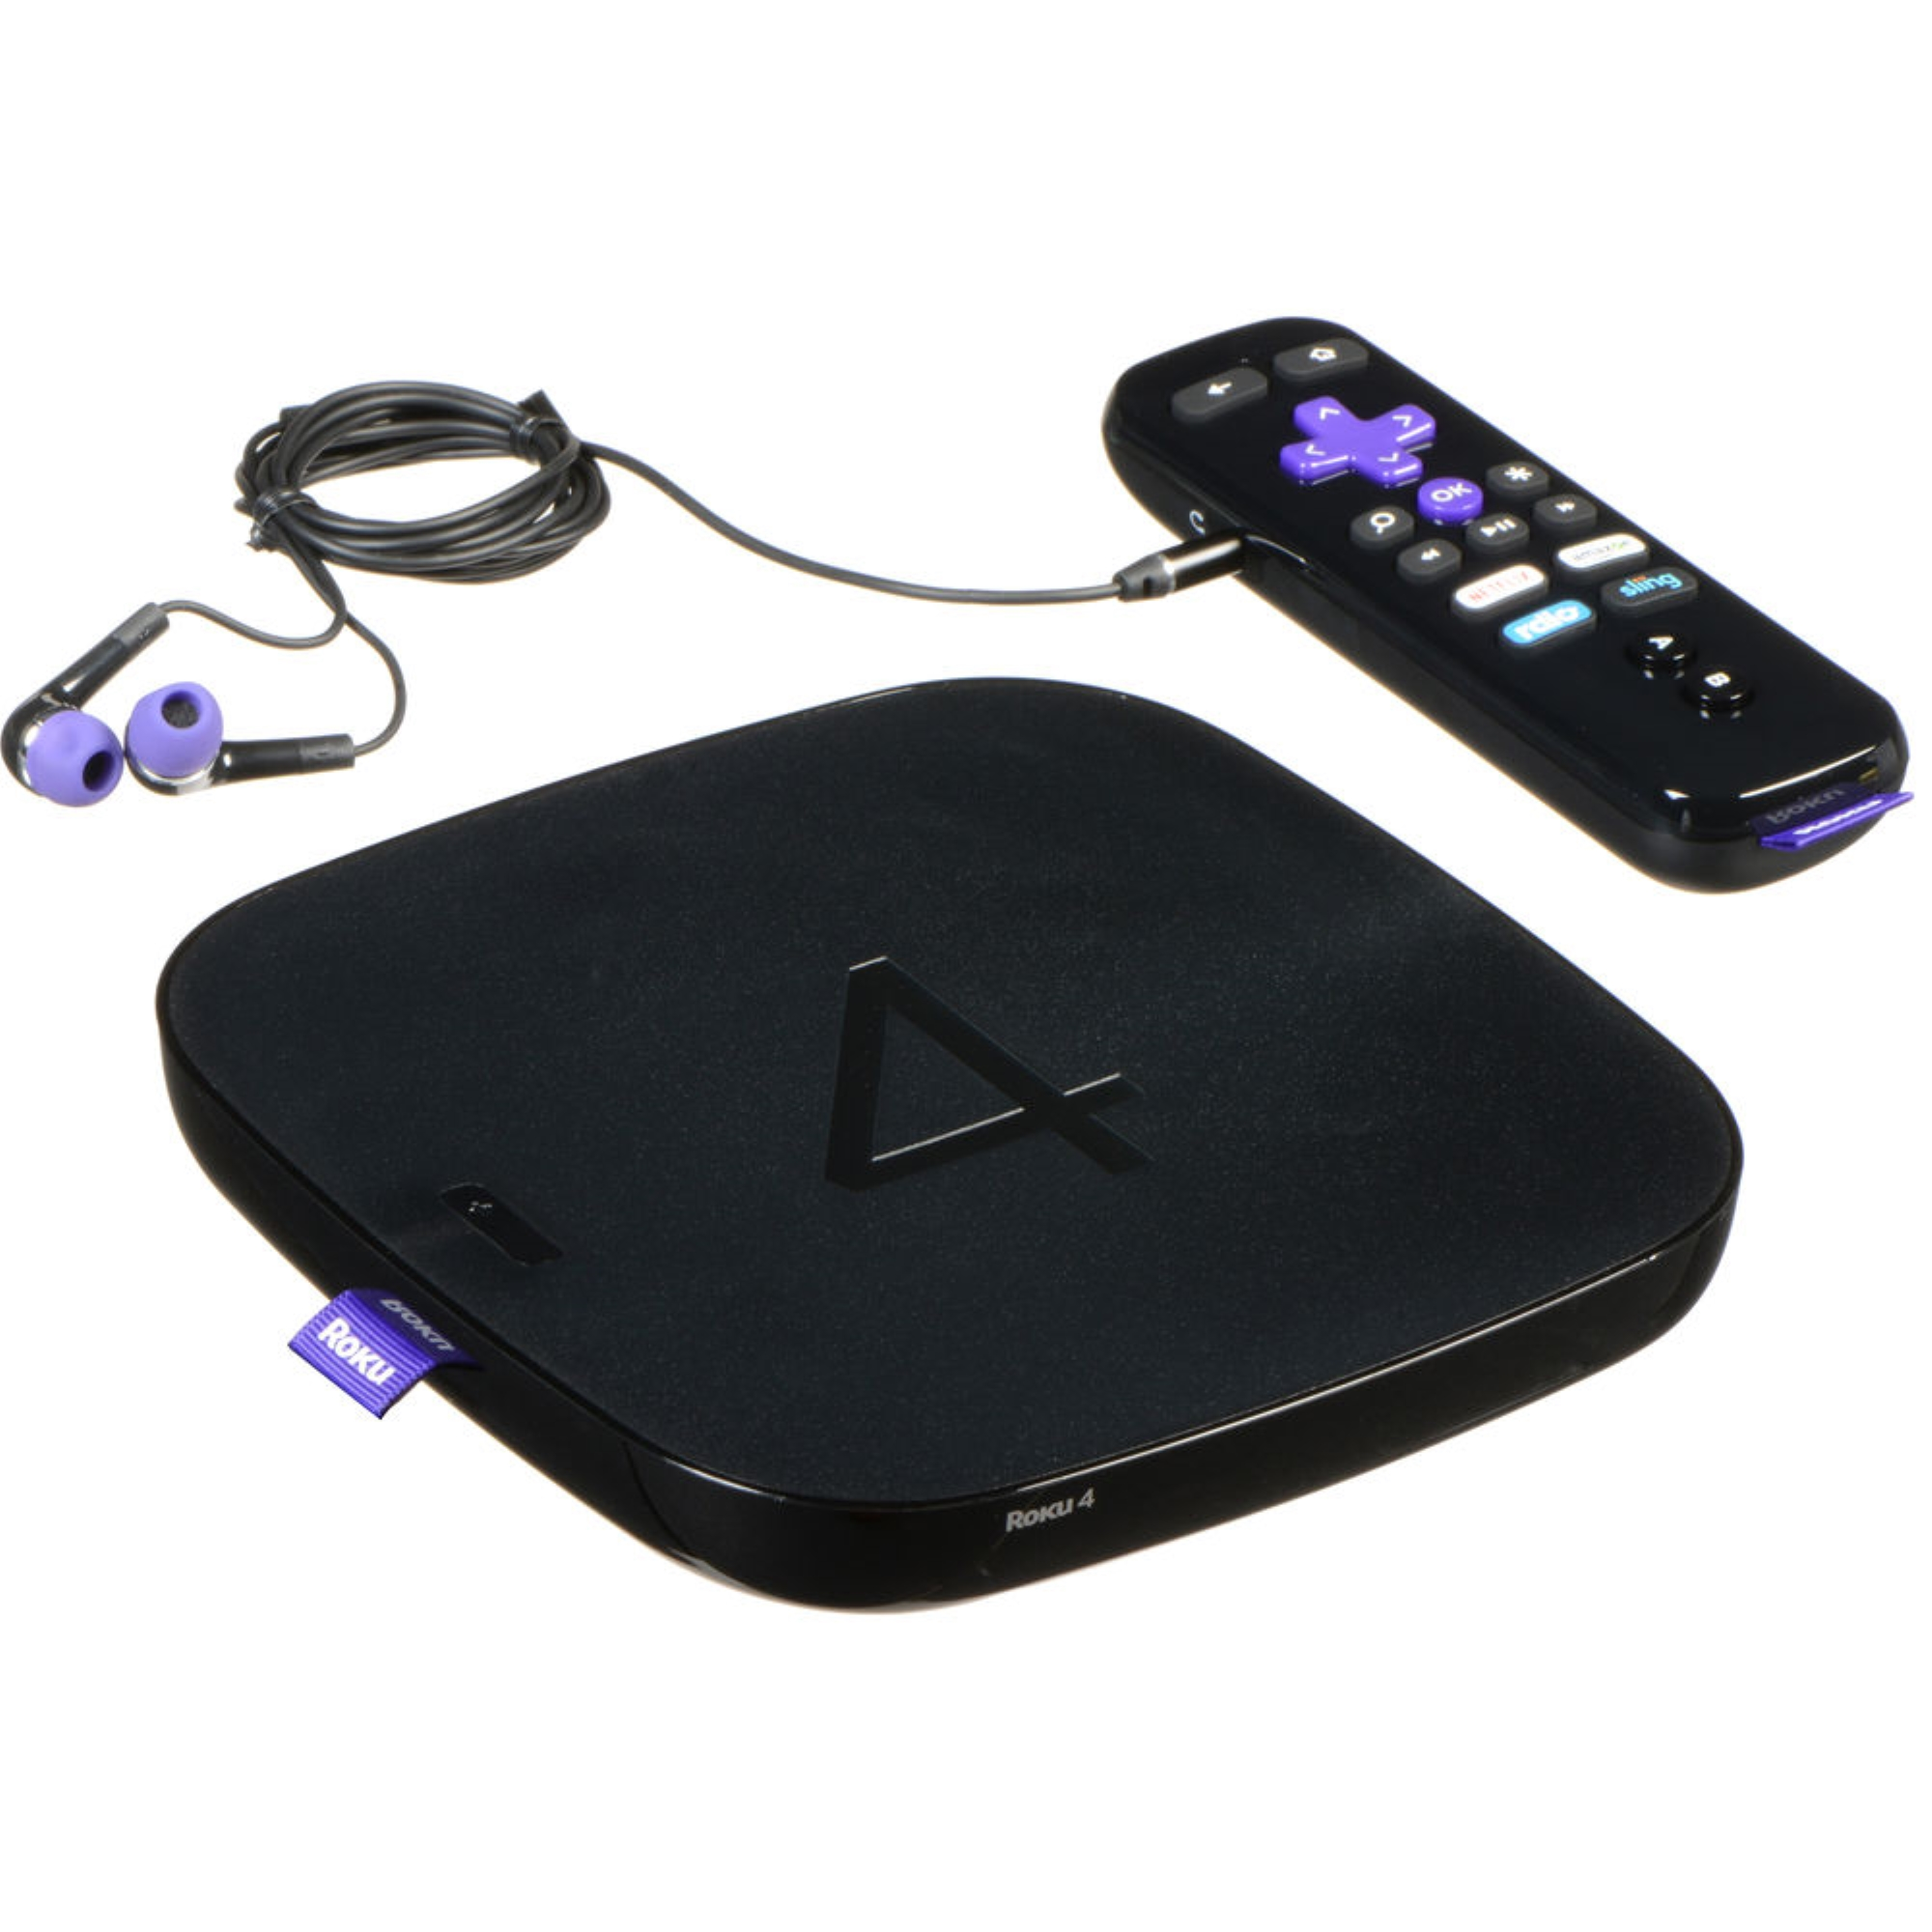 Roku 4 | HD and 4K UHD Streaming Media Player with Enhanced Remote (Manufacturer Refurbished)